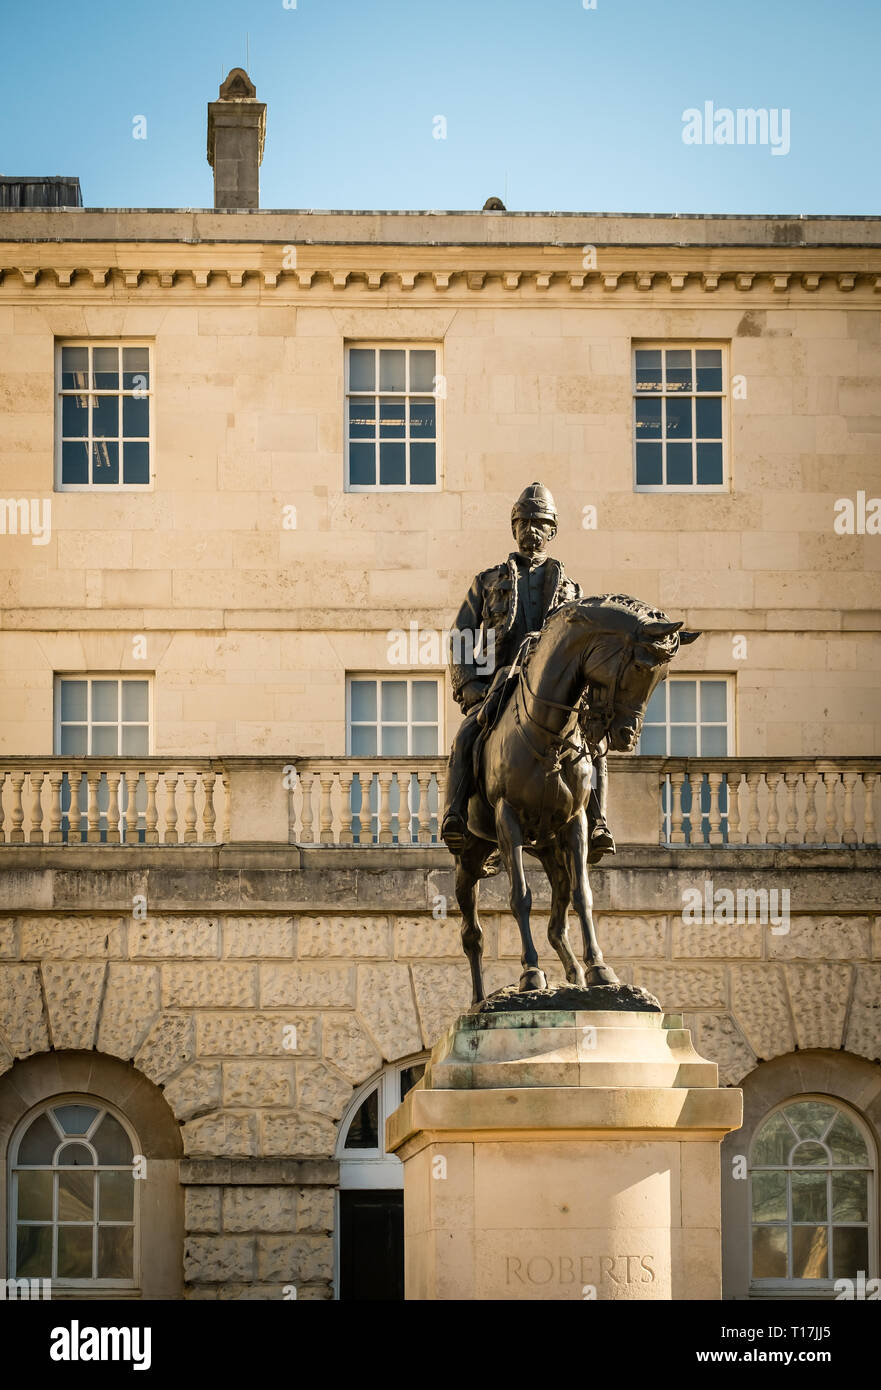 Statue of Lord Roberts, Whitehall, London, UK - Stock Image